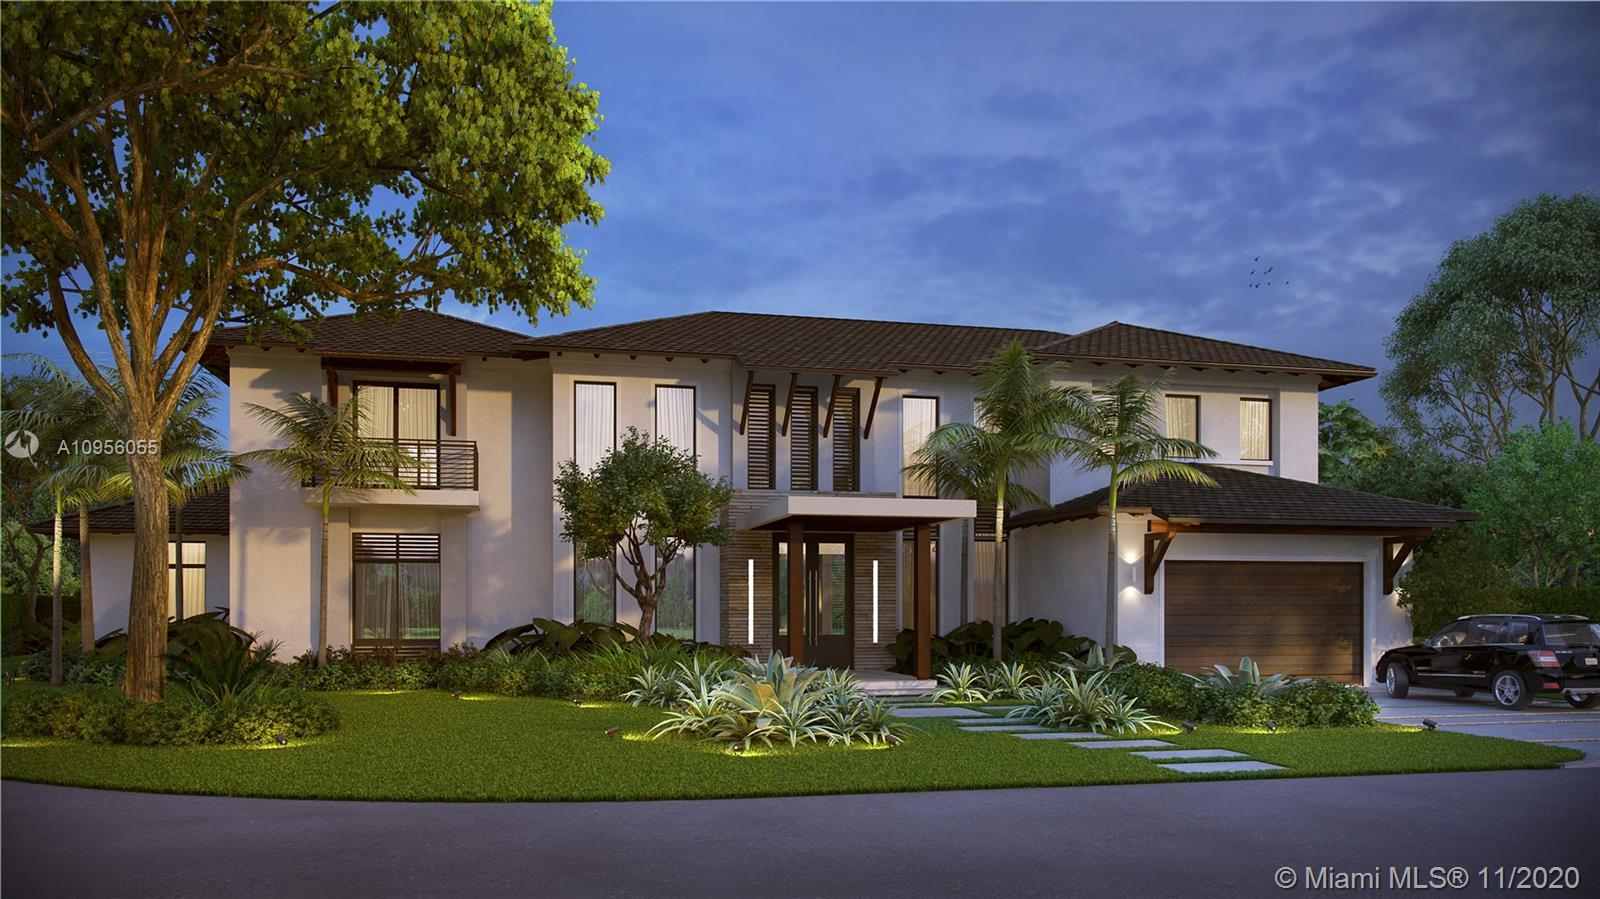 Live in a new level of modern luxury living. This homes sits on almost 1/2 an acre on a quiet privat